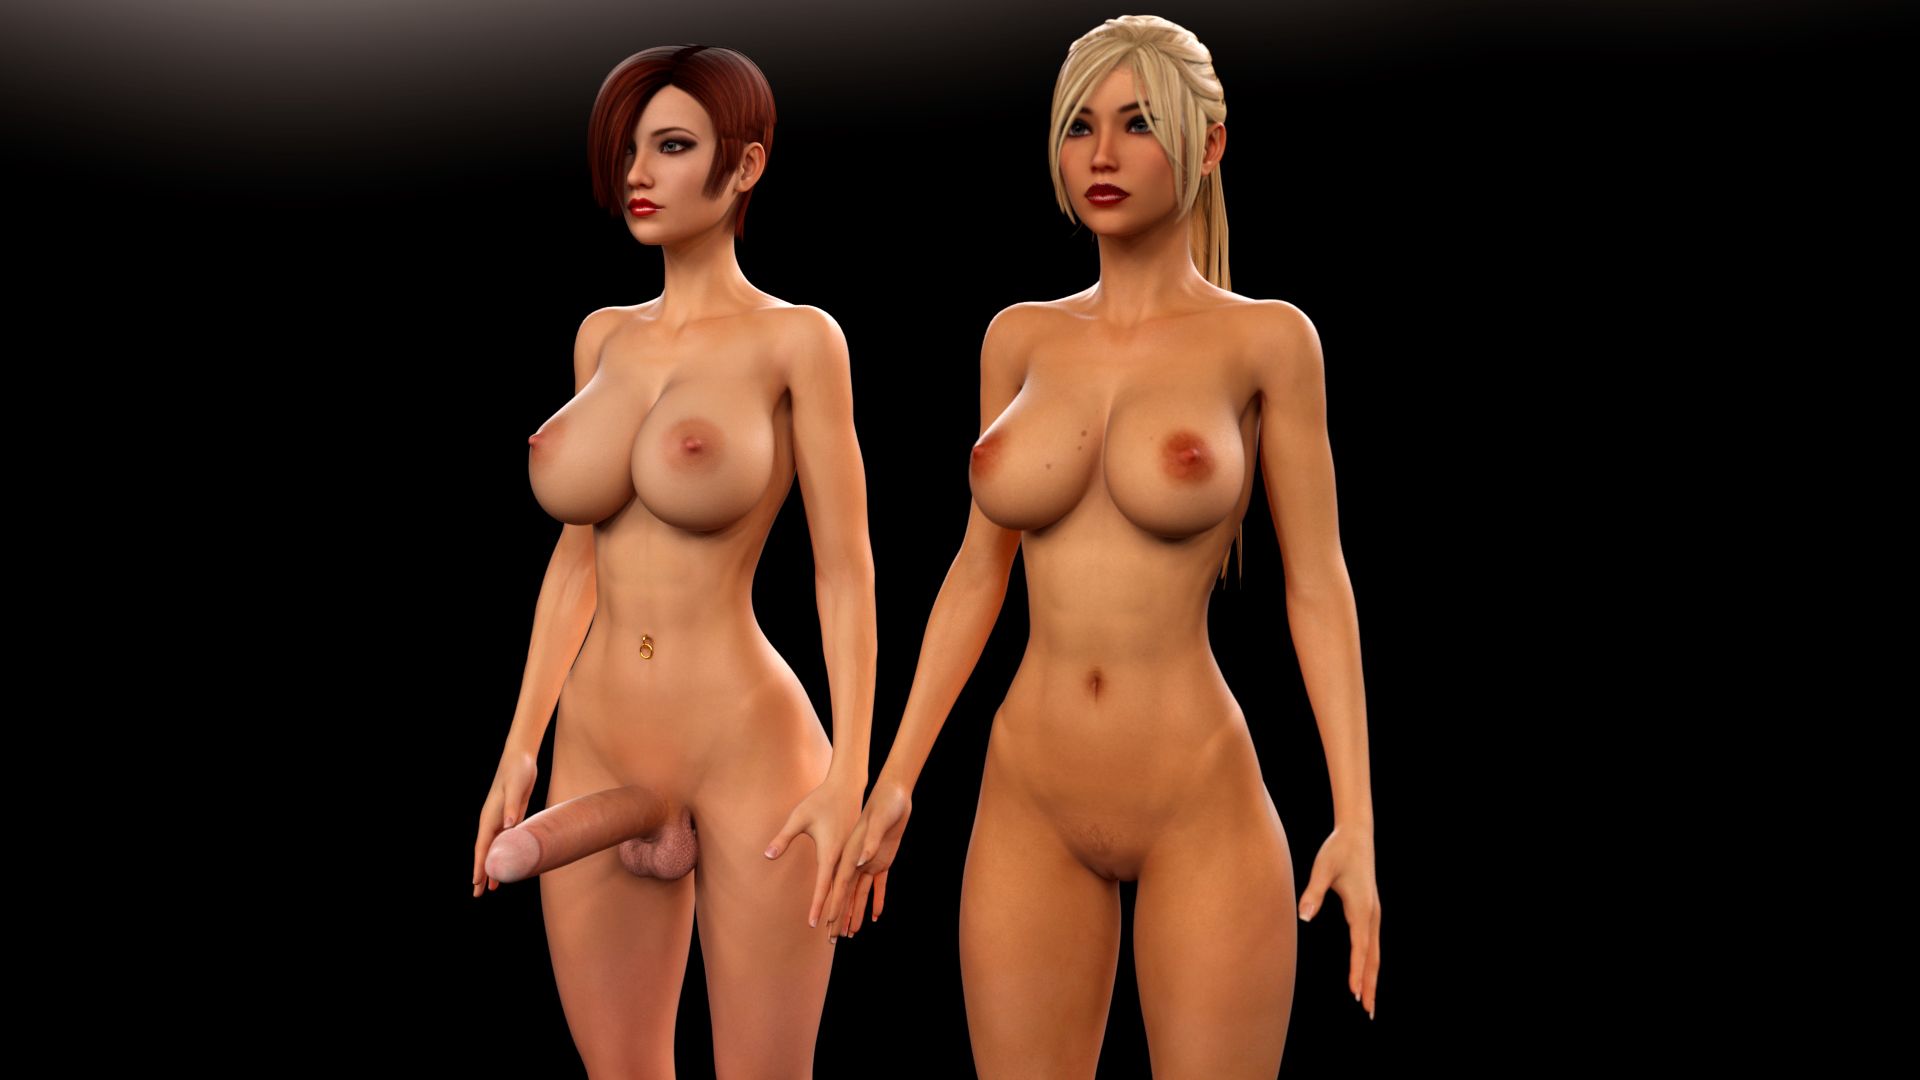 Hot nude girls games